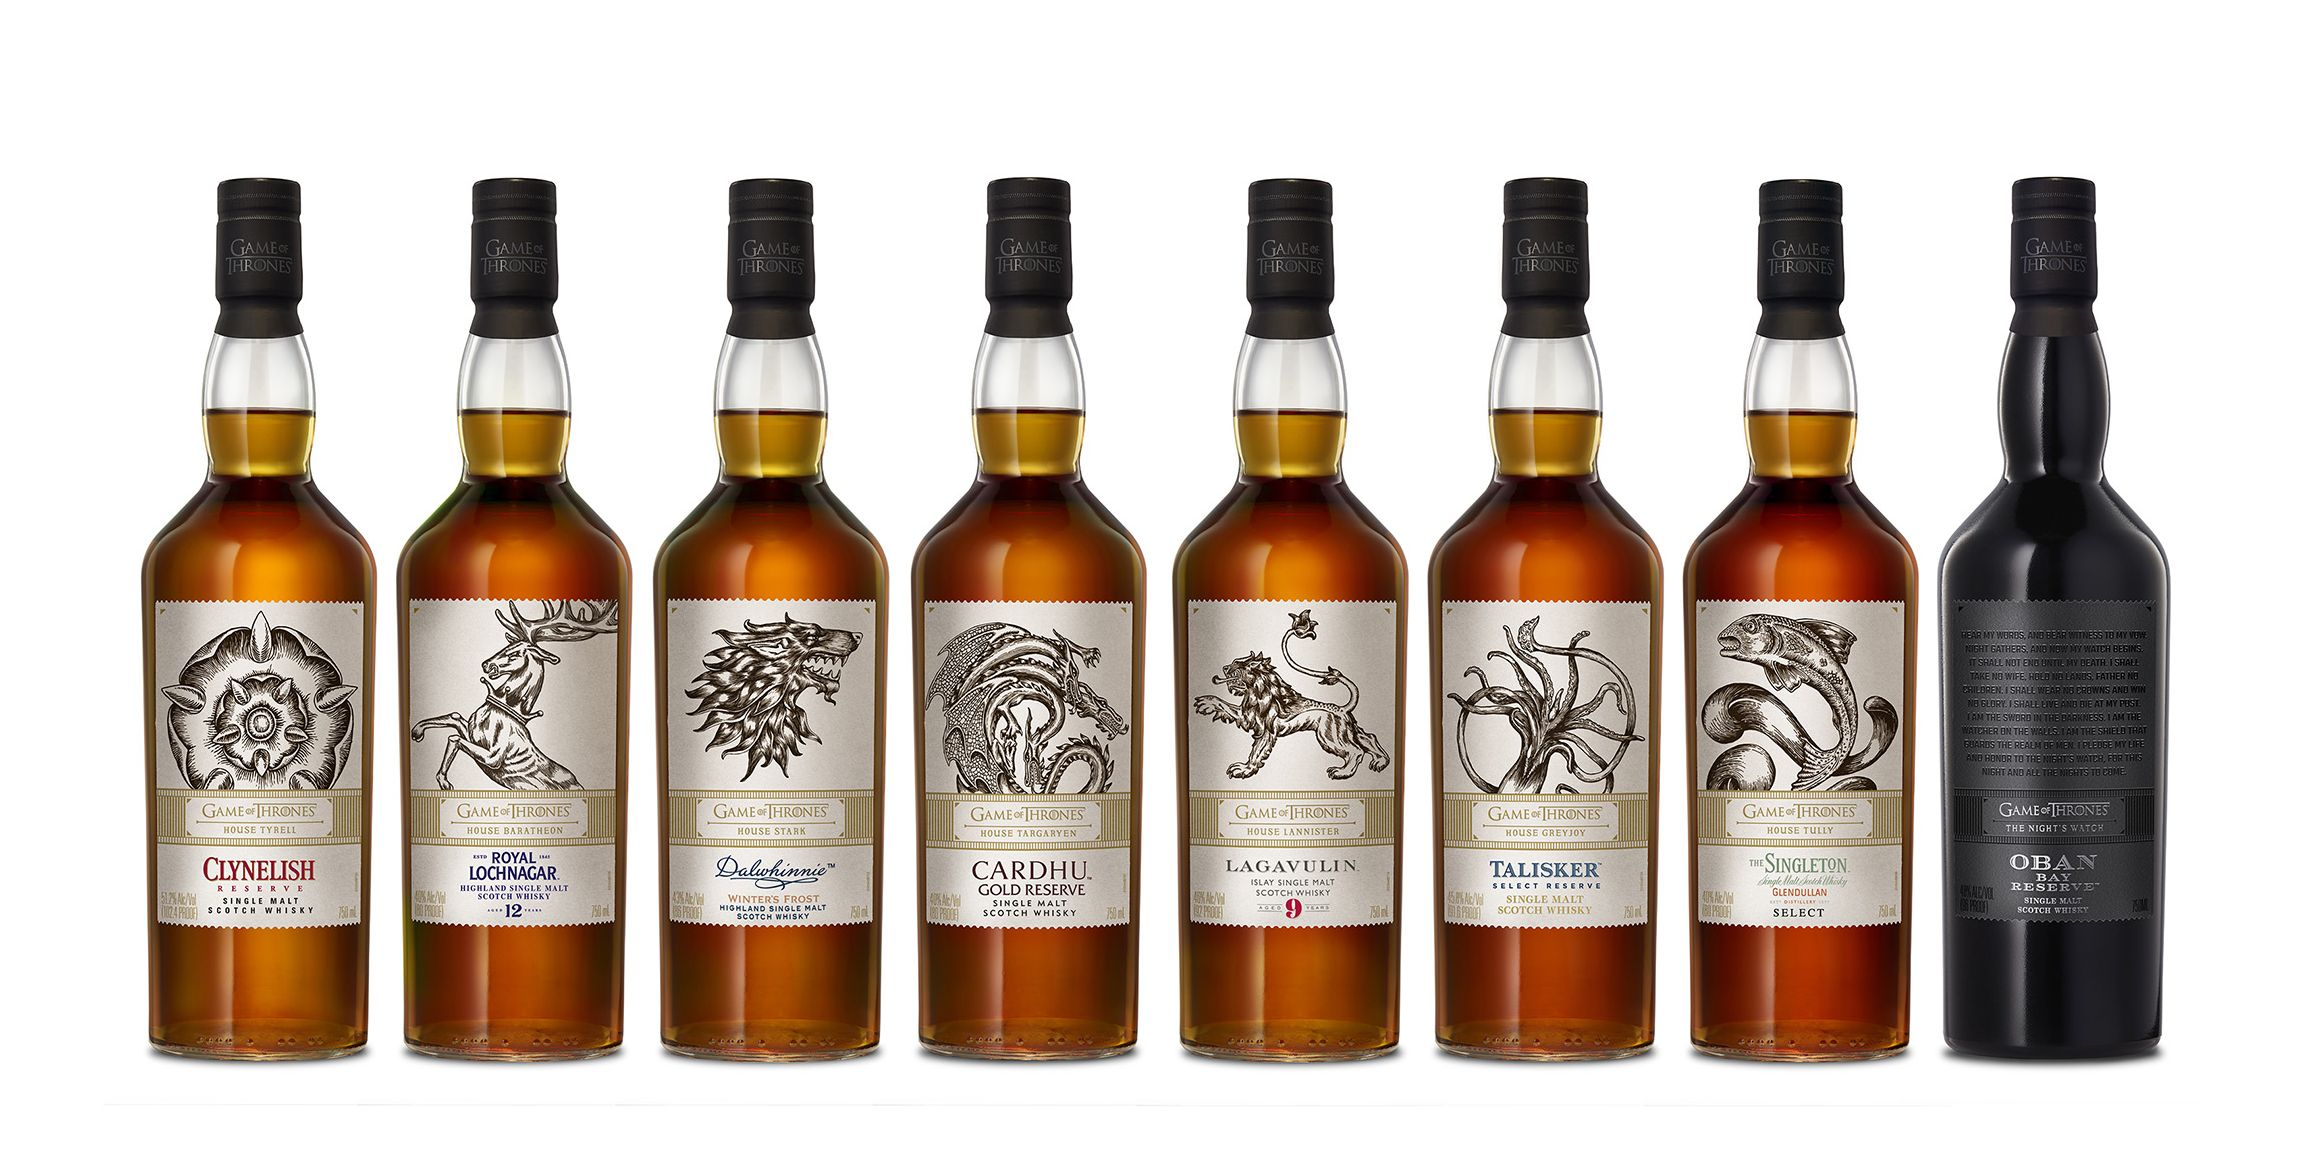 Game of Thrones Just Released 8 Scotch Whiskies, and There Goes Our Winter